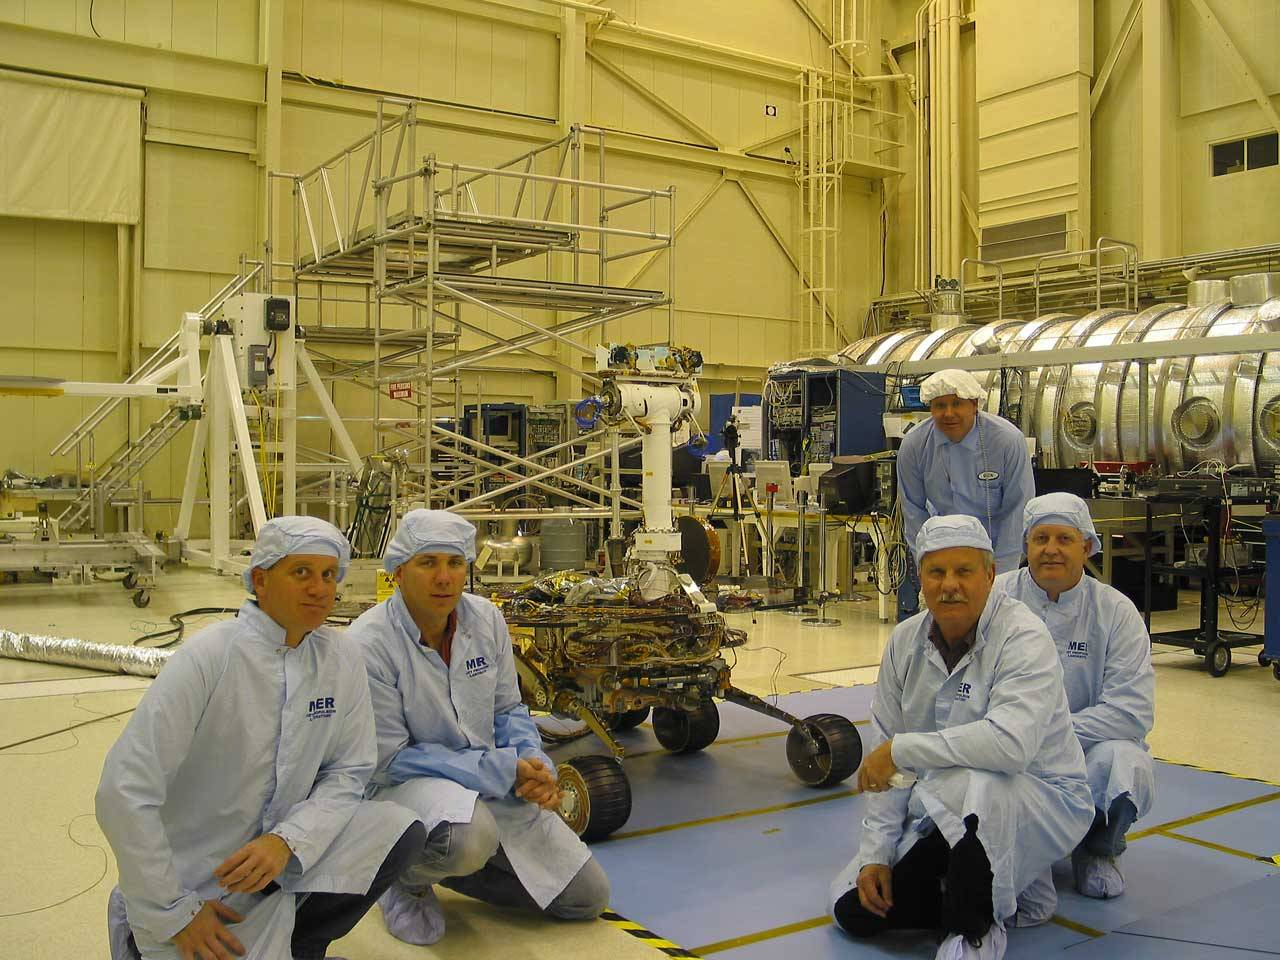 Rover team members with rover.